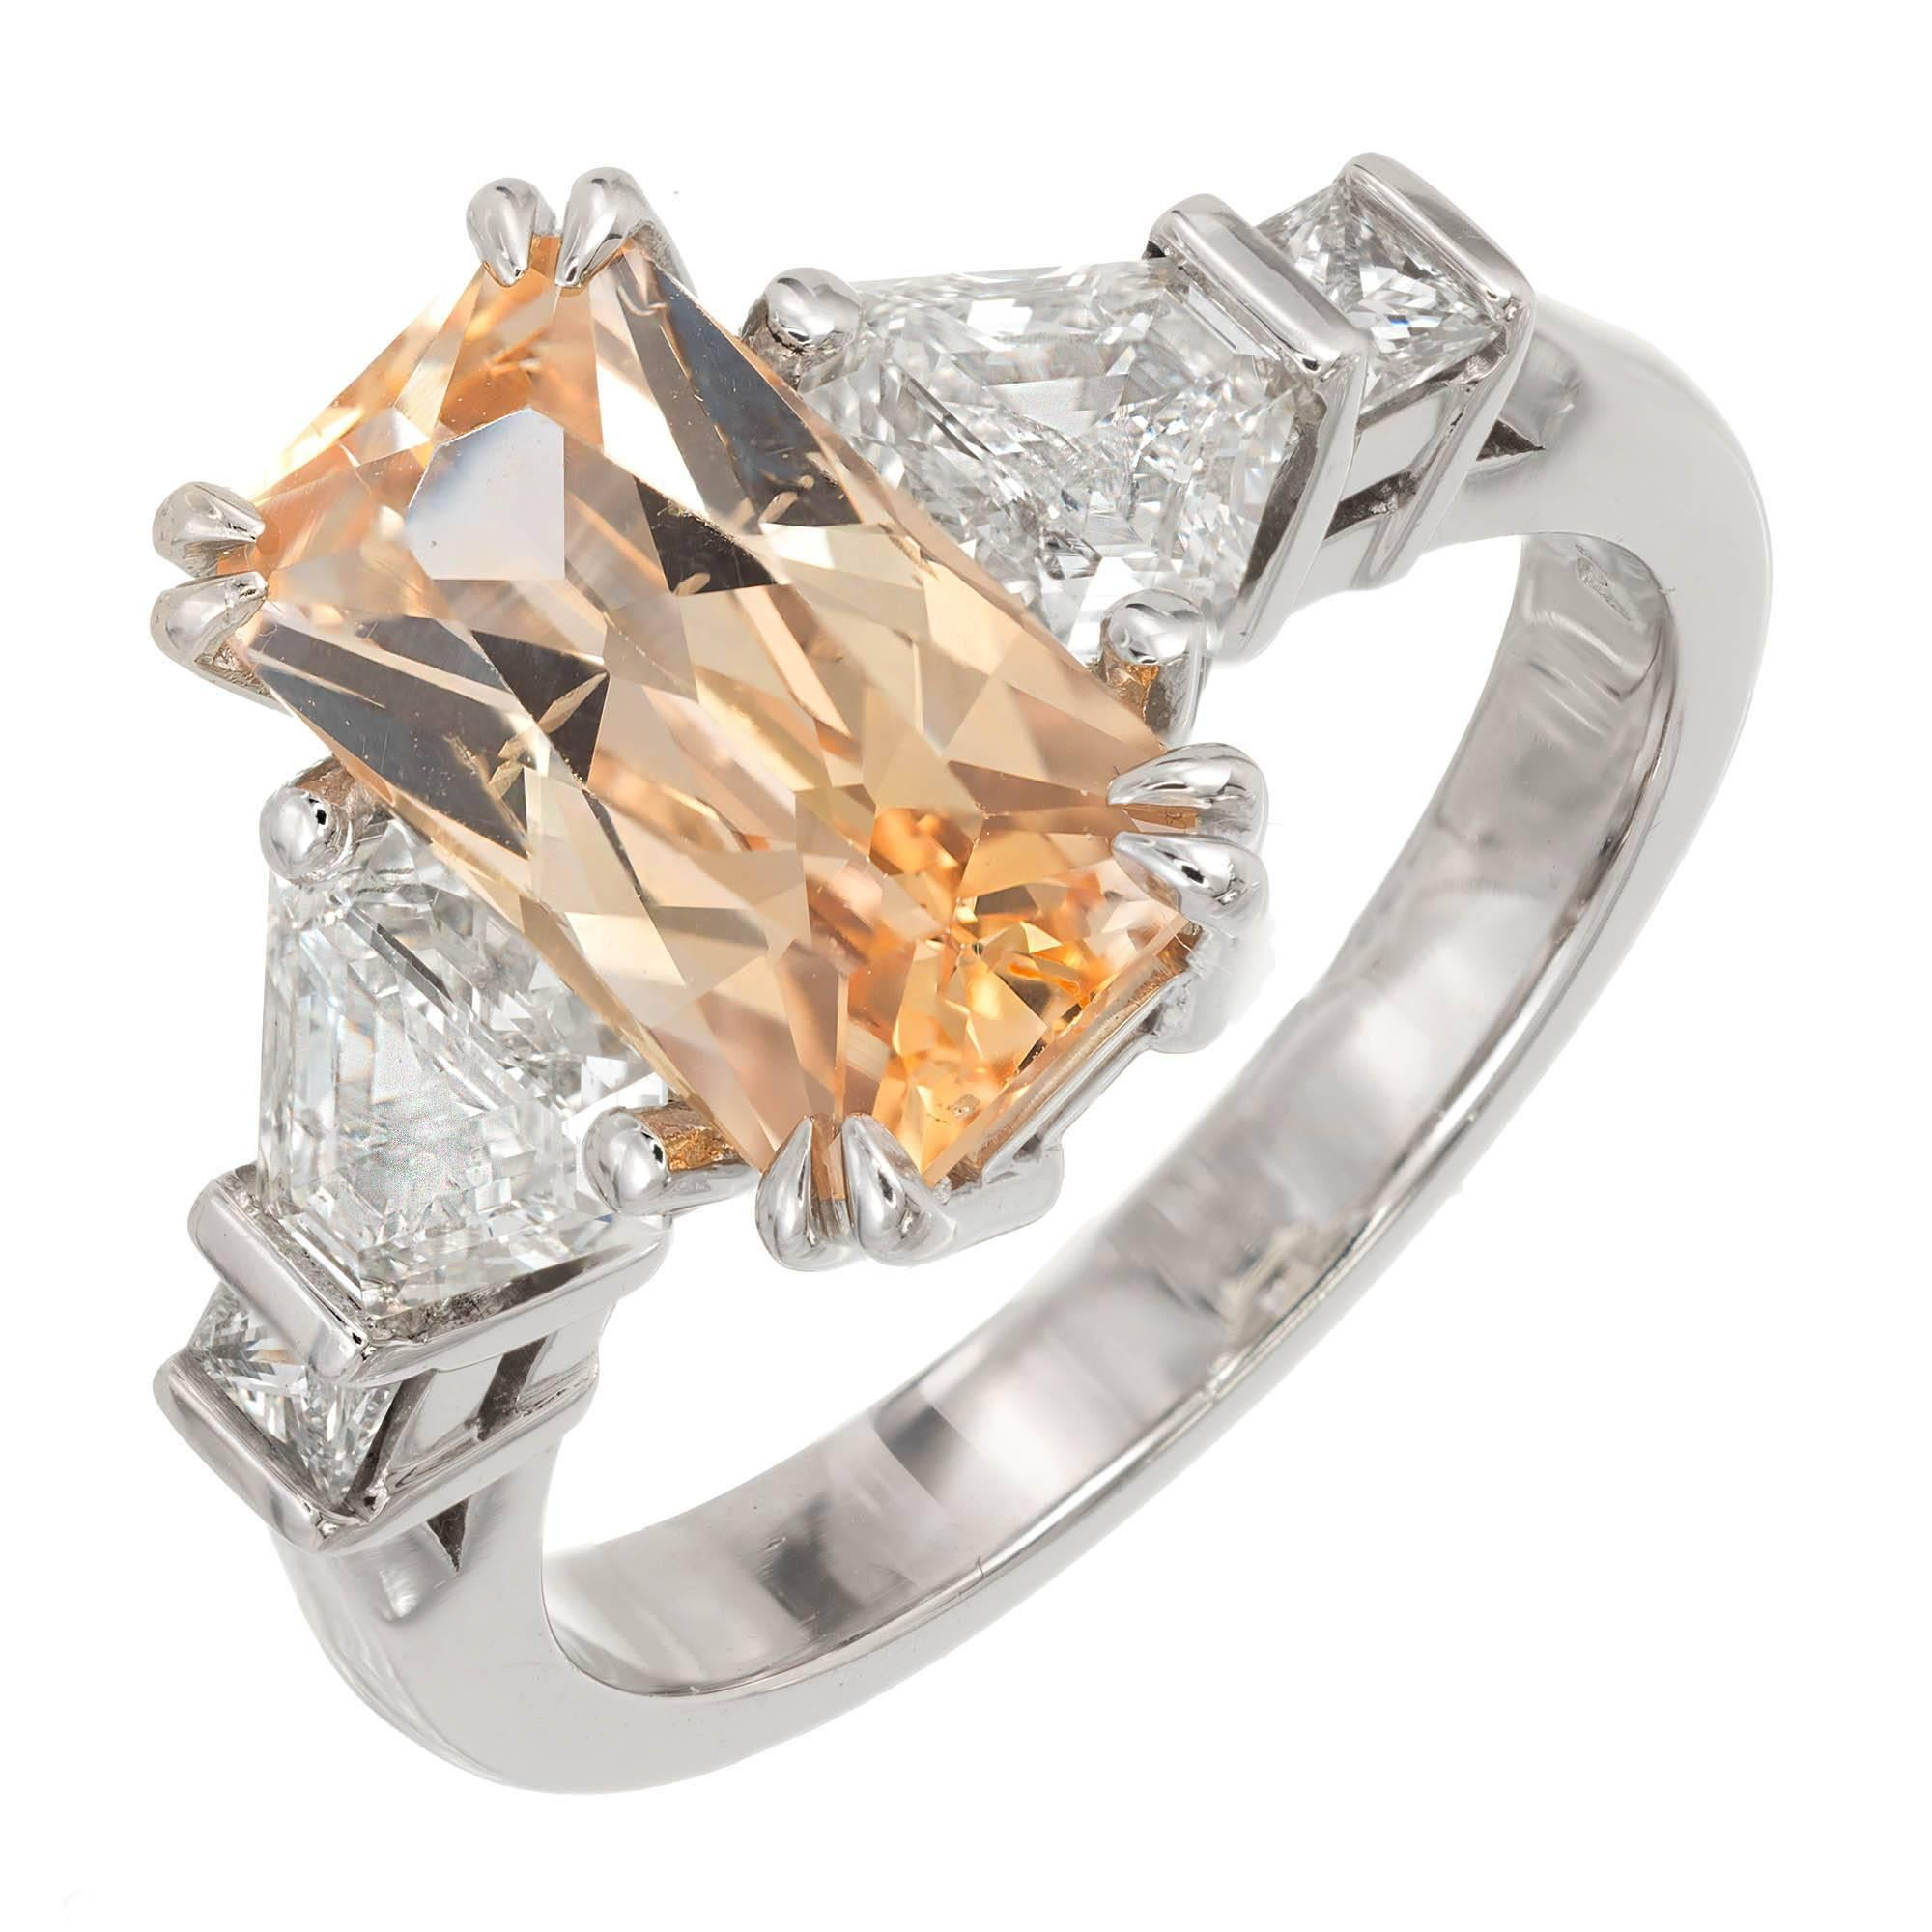 rings orange the best surrounding areas buy antique county in place engagement to